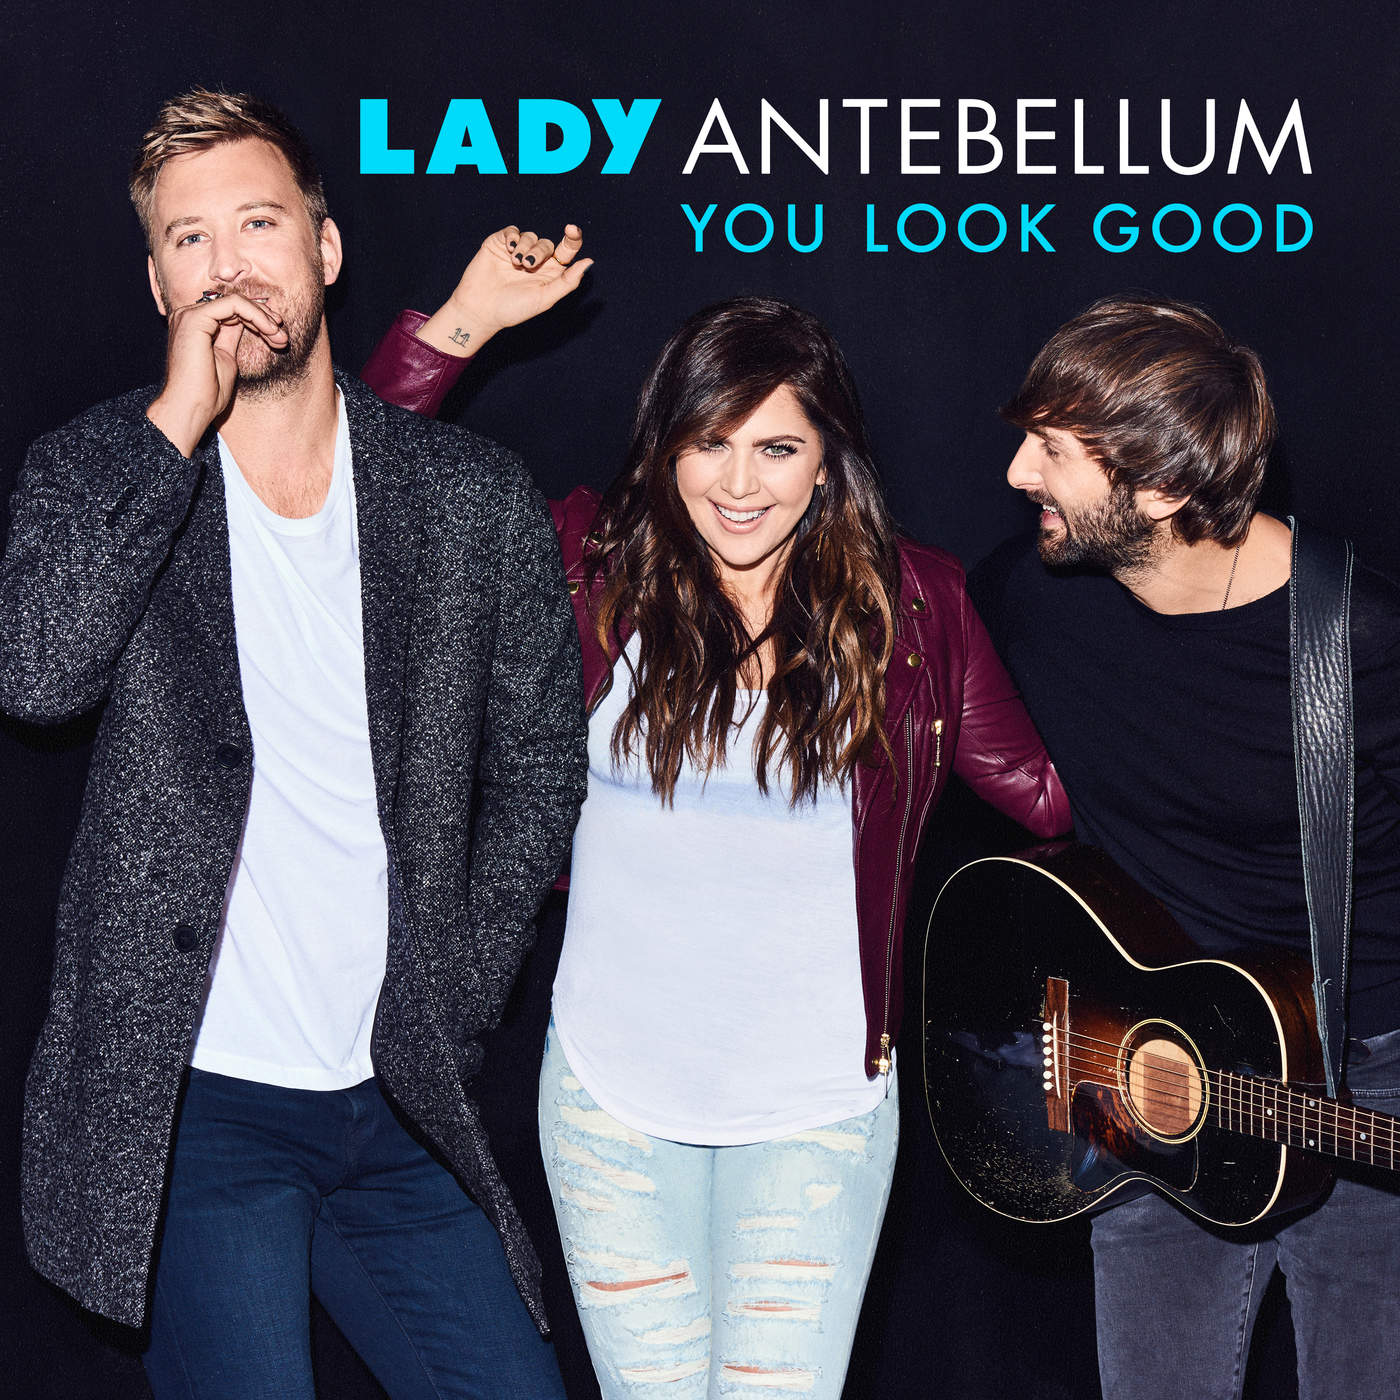 Lady Antebellum - You Look Good - Single Cover